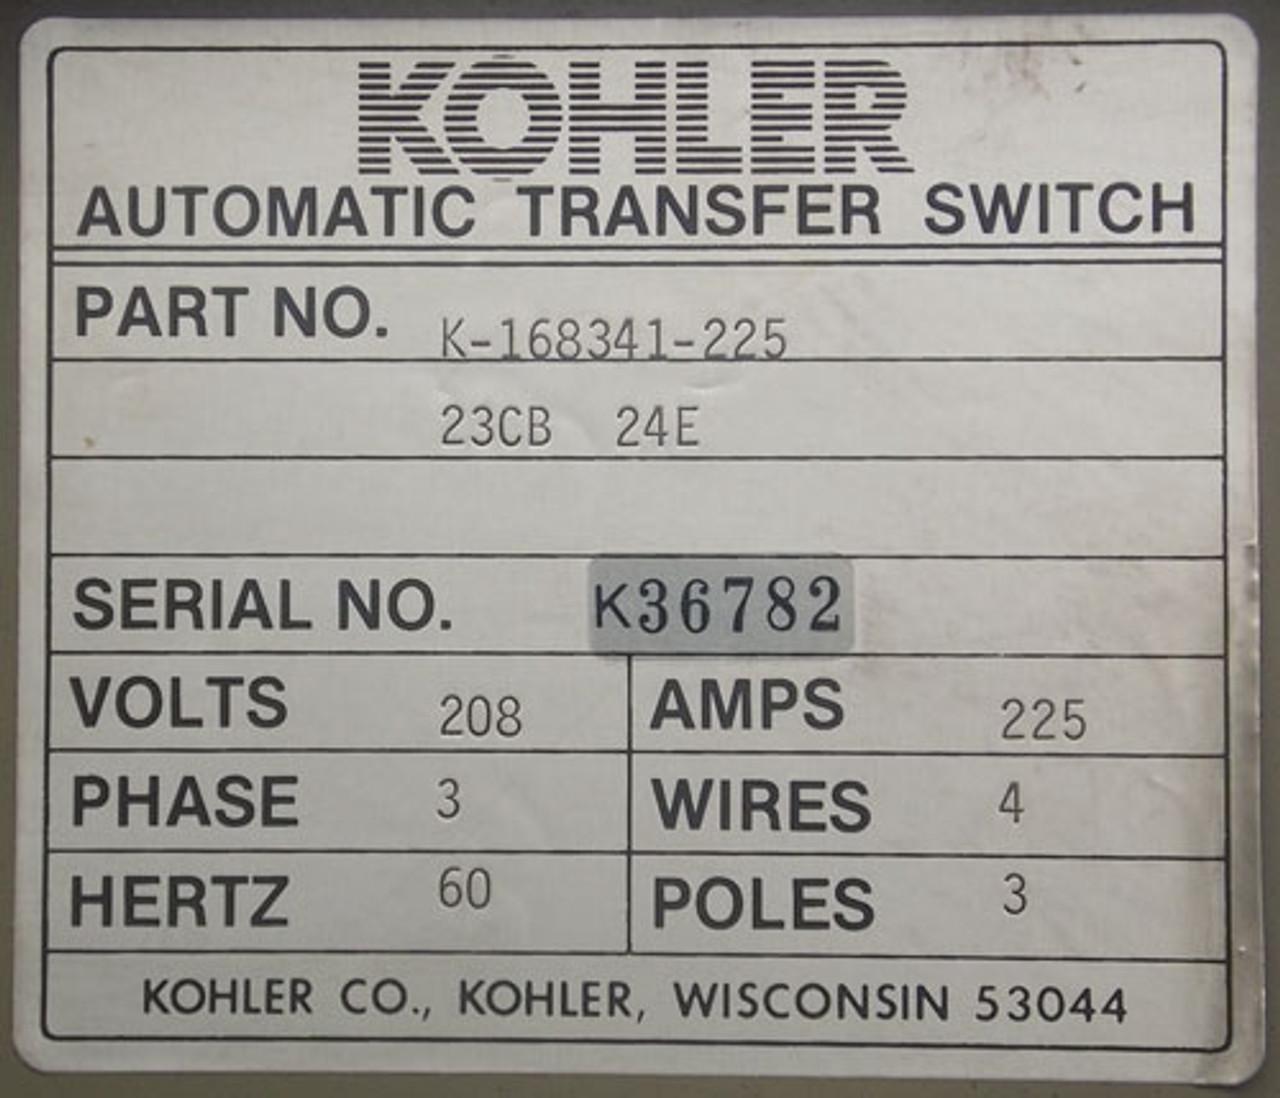 Kohler K-168341-225 3 Phase 4 Wire 225A 208V Automatic Transfer Switch - Used